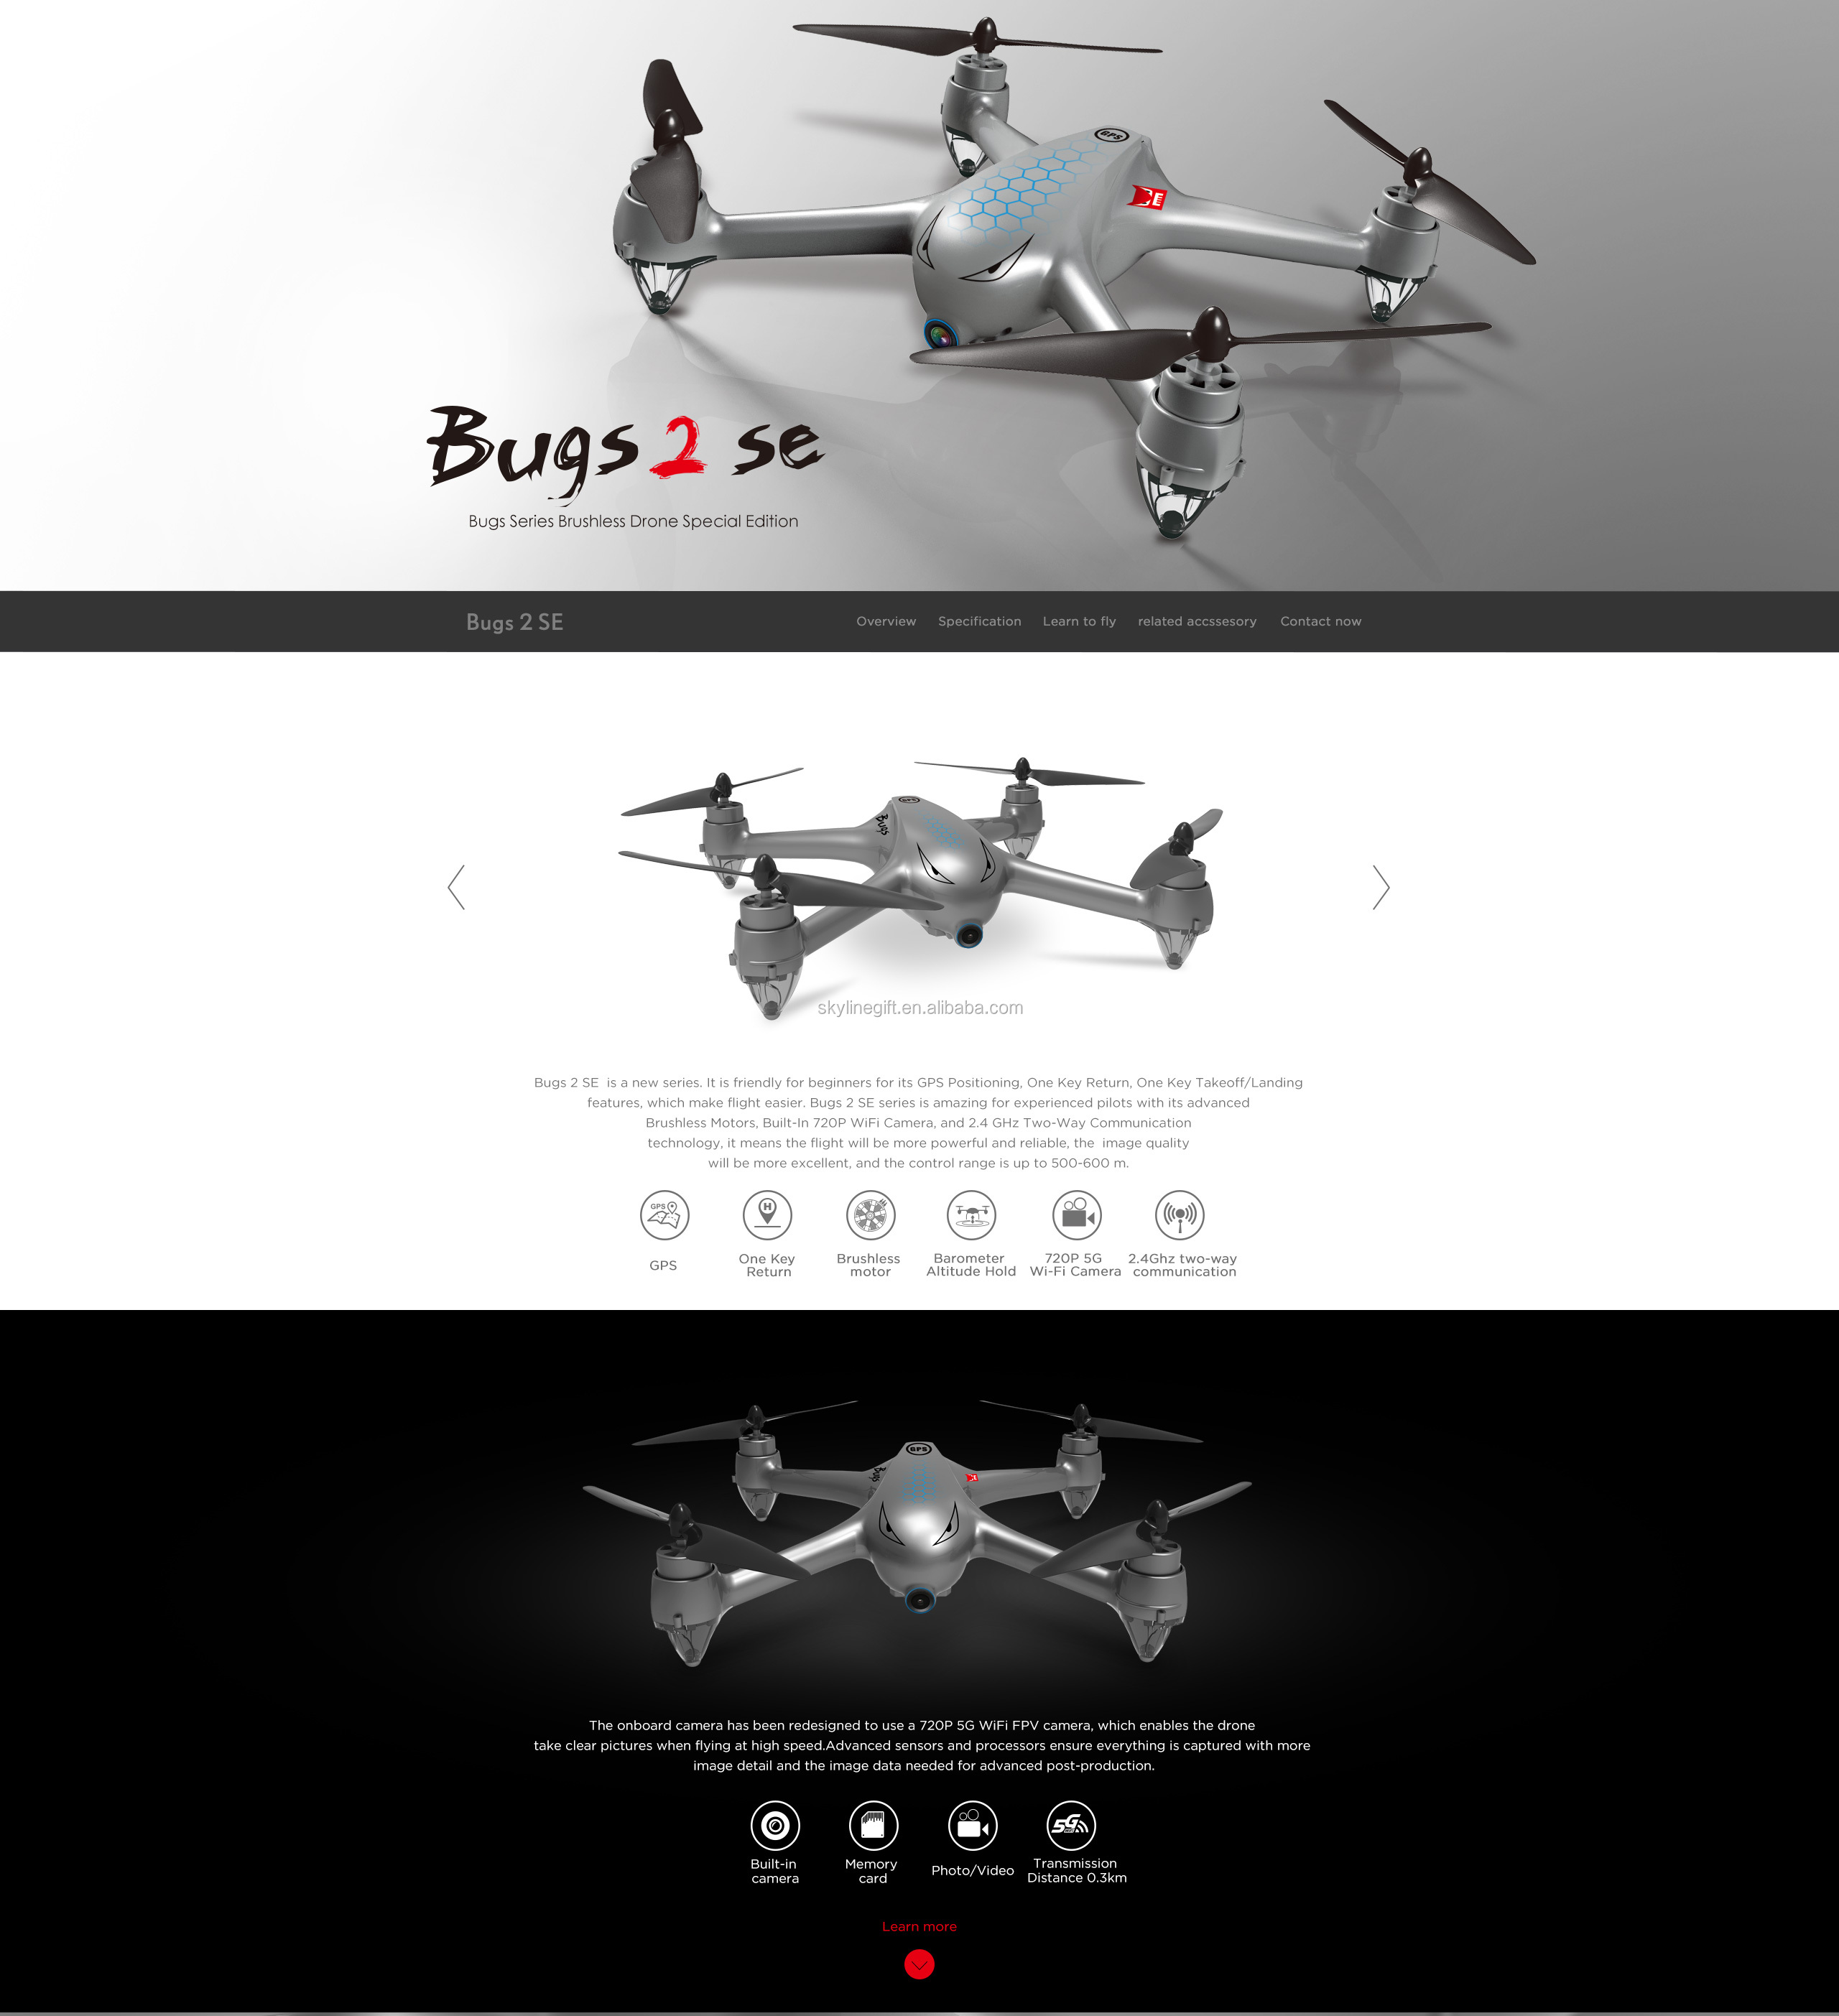 MJX Bugs 2SE brushless Motor 720P 5G WIFI Camera 2.Ghz two-way communication GPS Drone